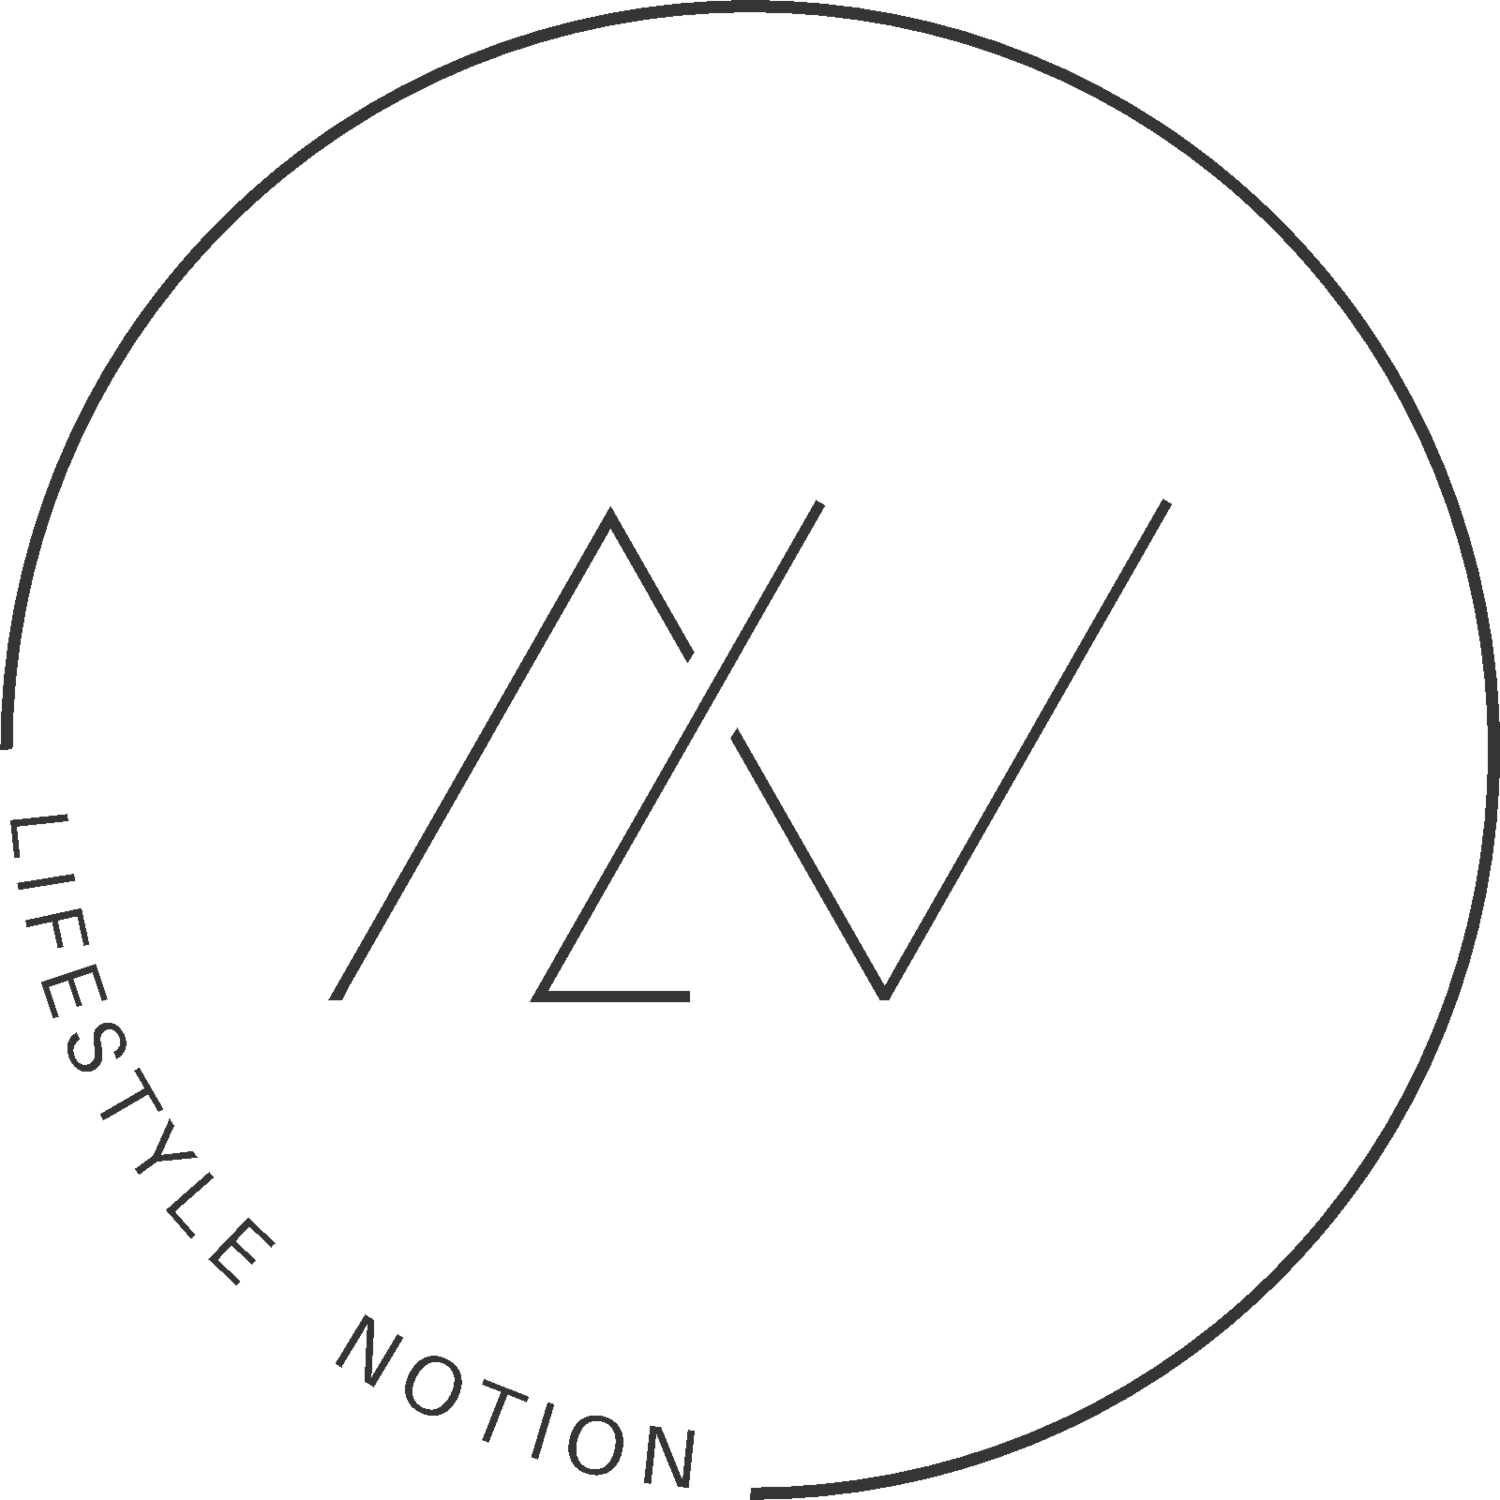 LIFESTYLE NOTION Australia